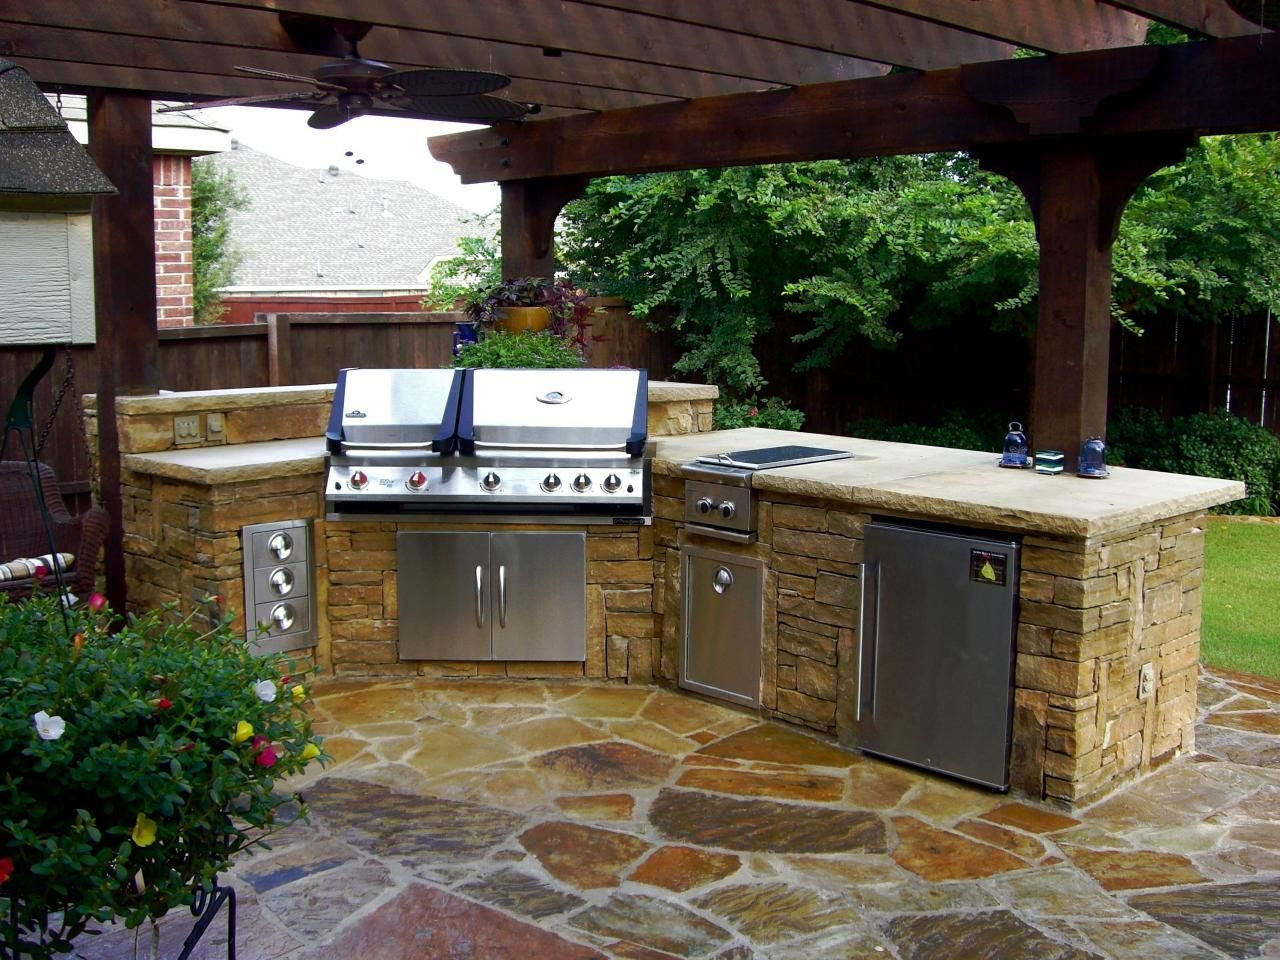 Cabinets within the Outdoors